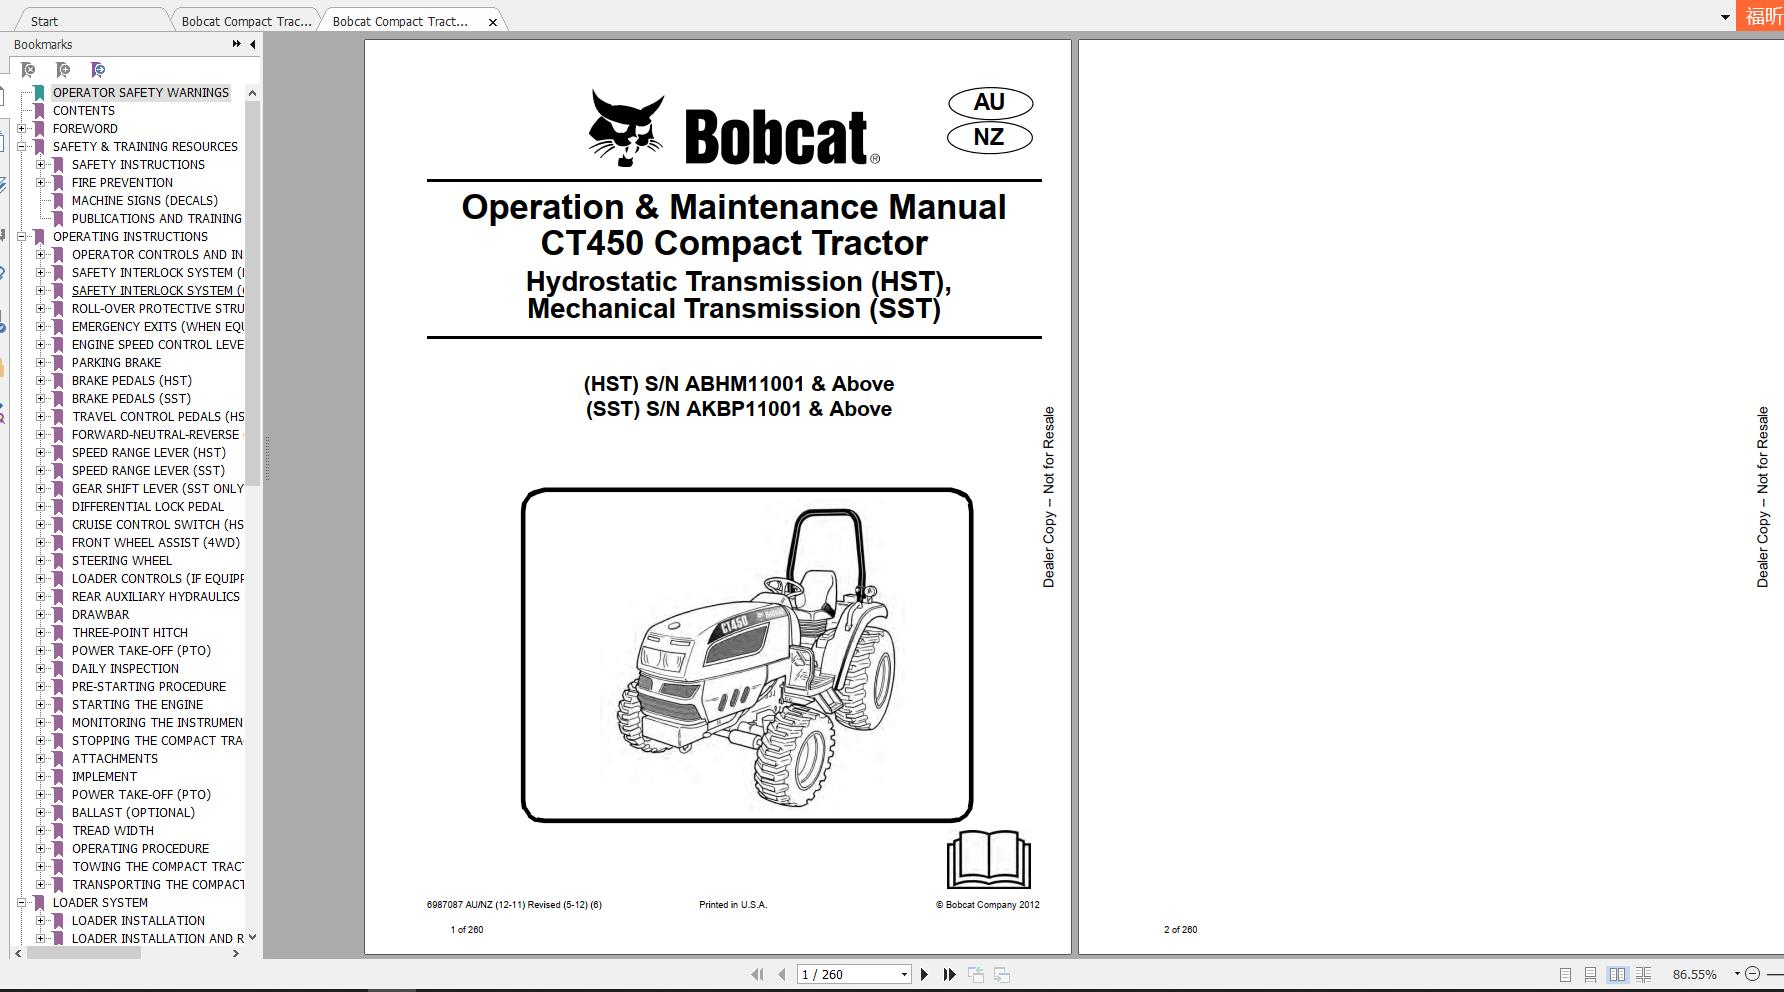 Bobcat Compact Tractor CT450 Operation & Maintenance